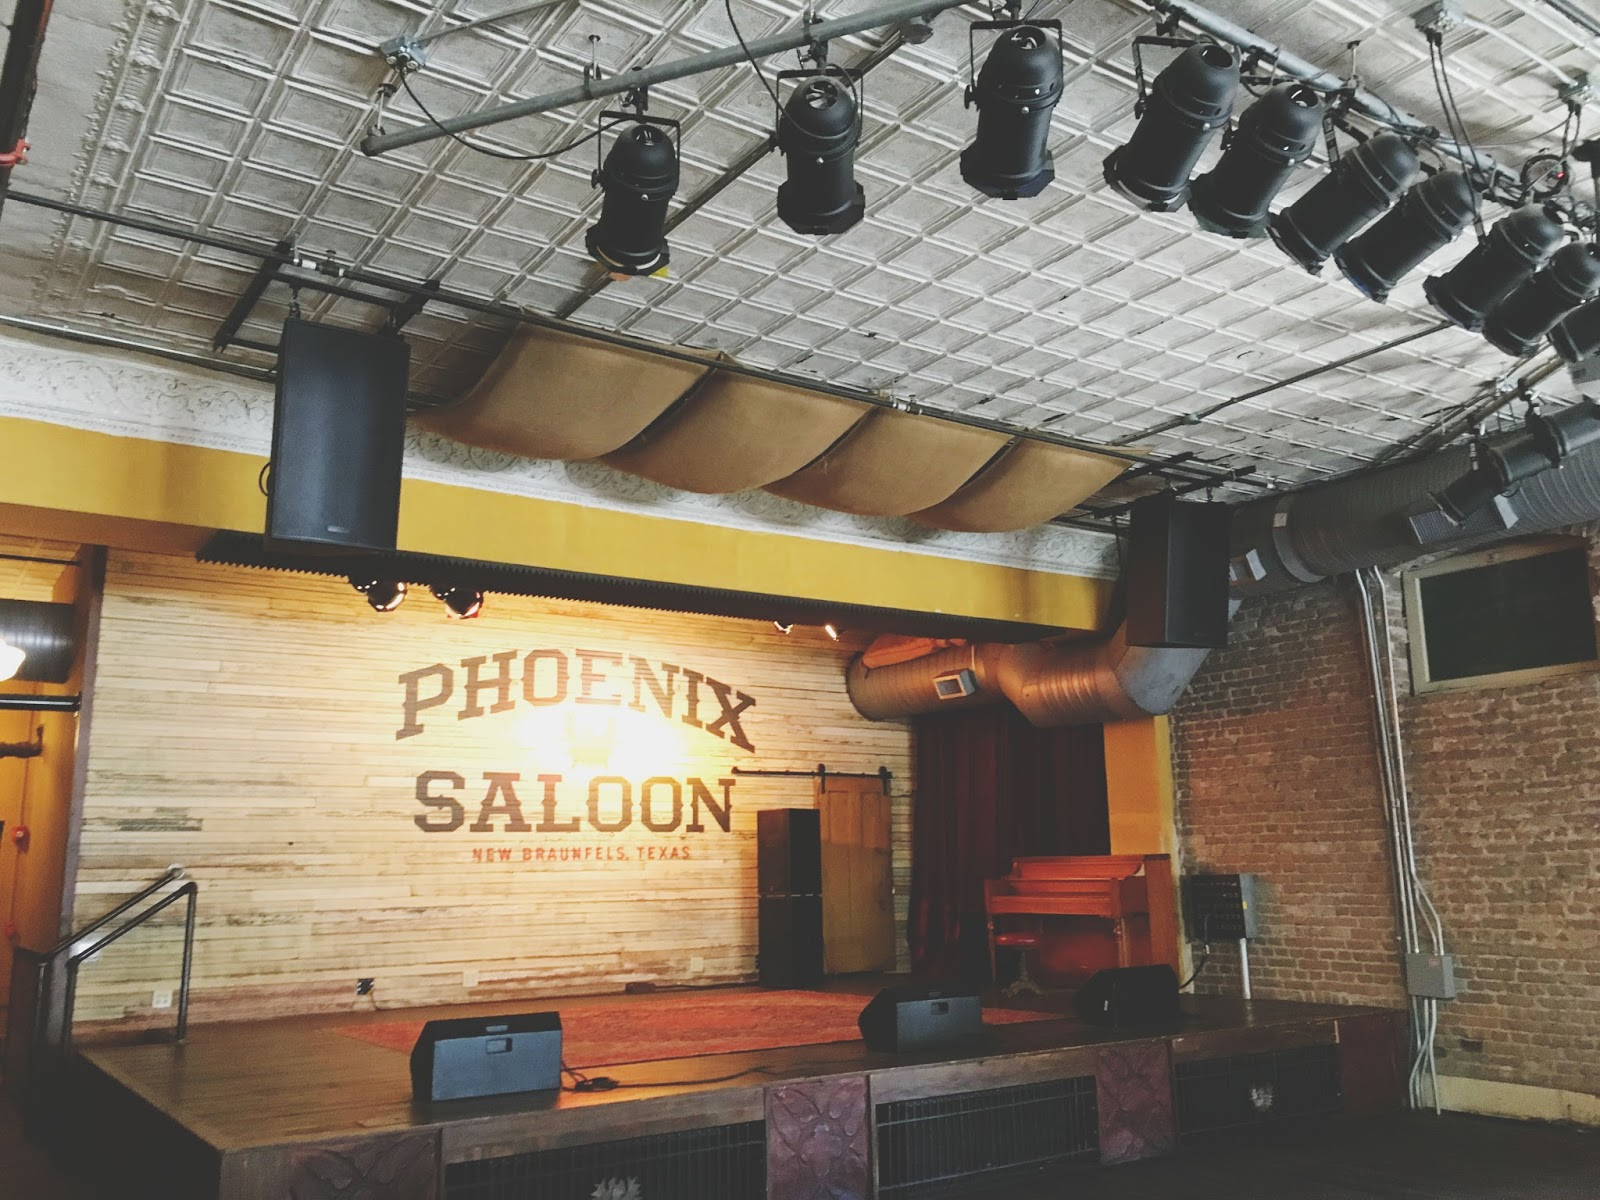 The Phoenix Saloon - a restaurant in New Braunfels, Texas